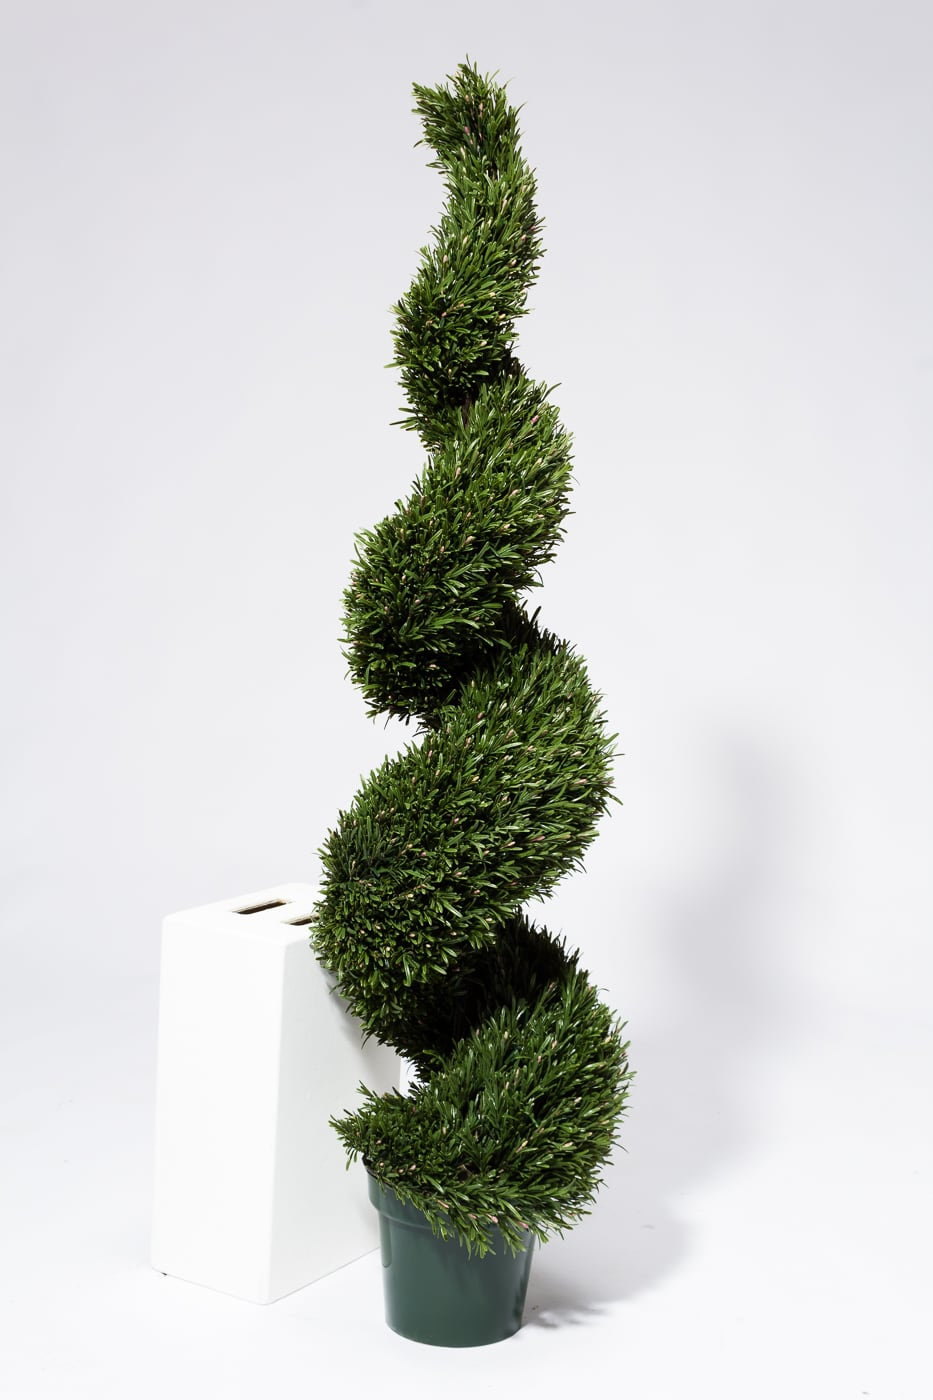 Fp002 5 Faux Rosemary Spiral Topiary Tree Prop Rental